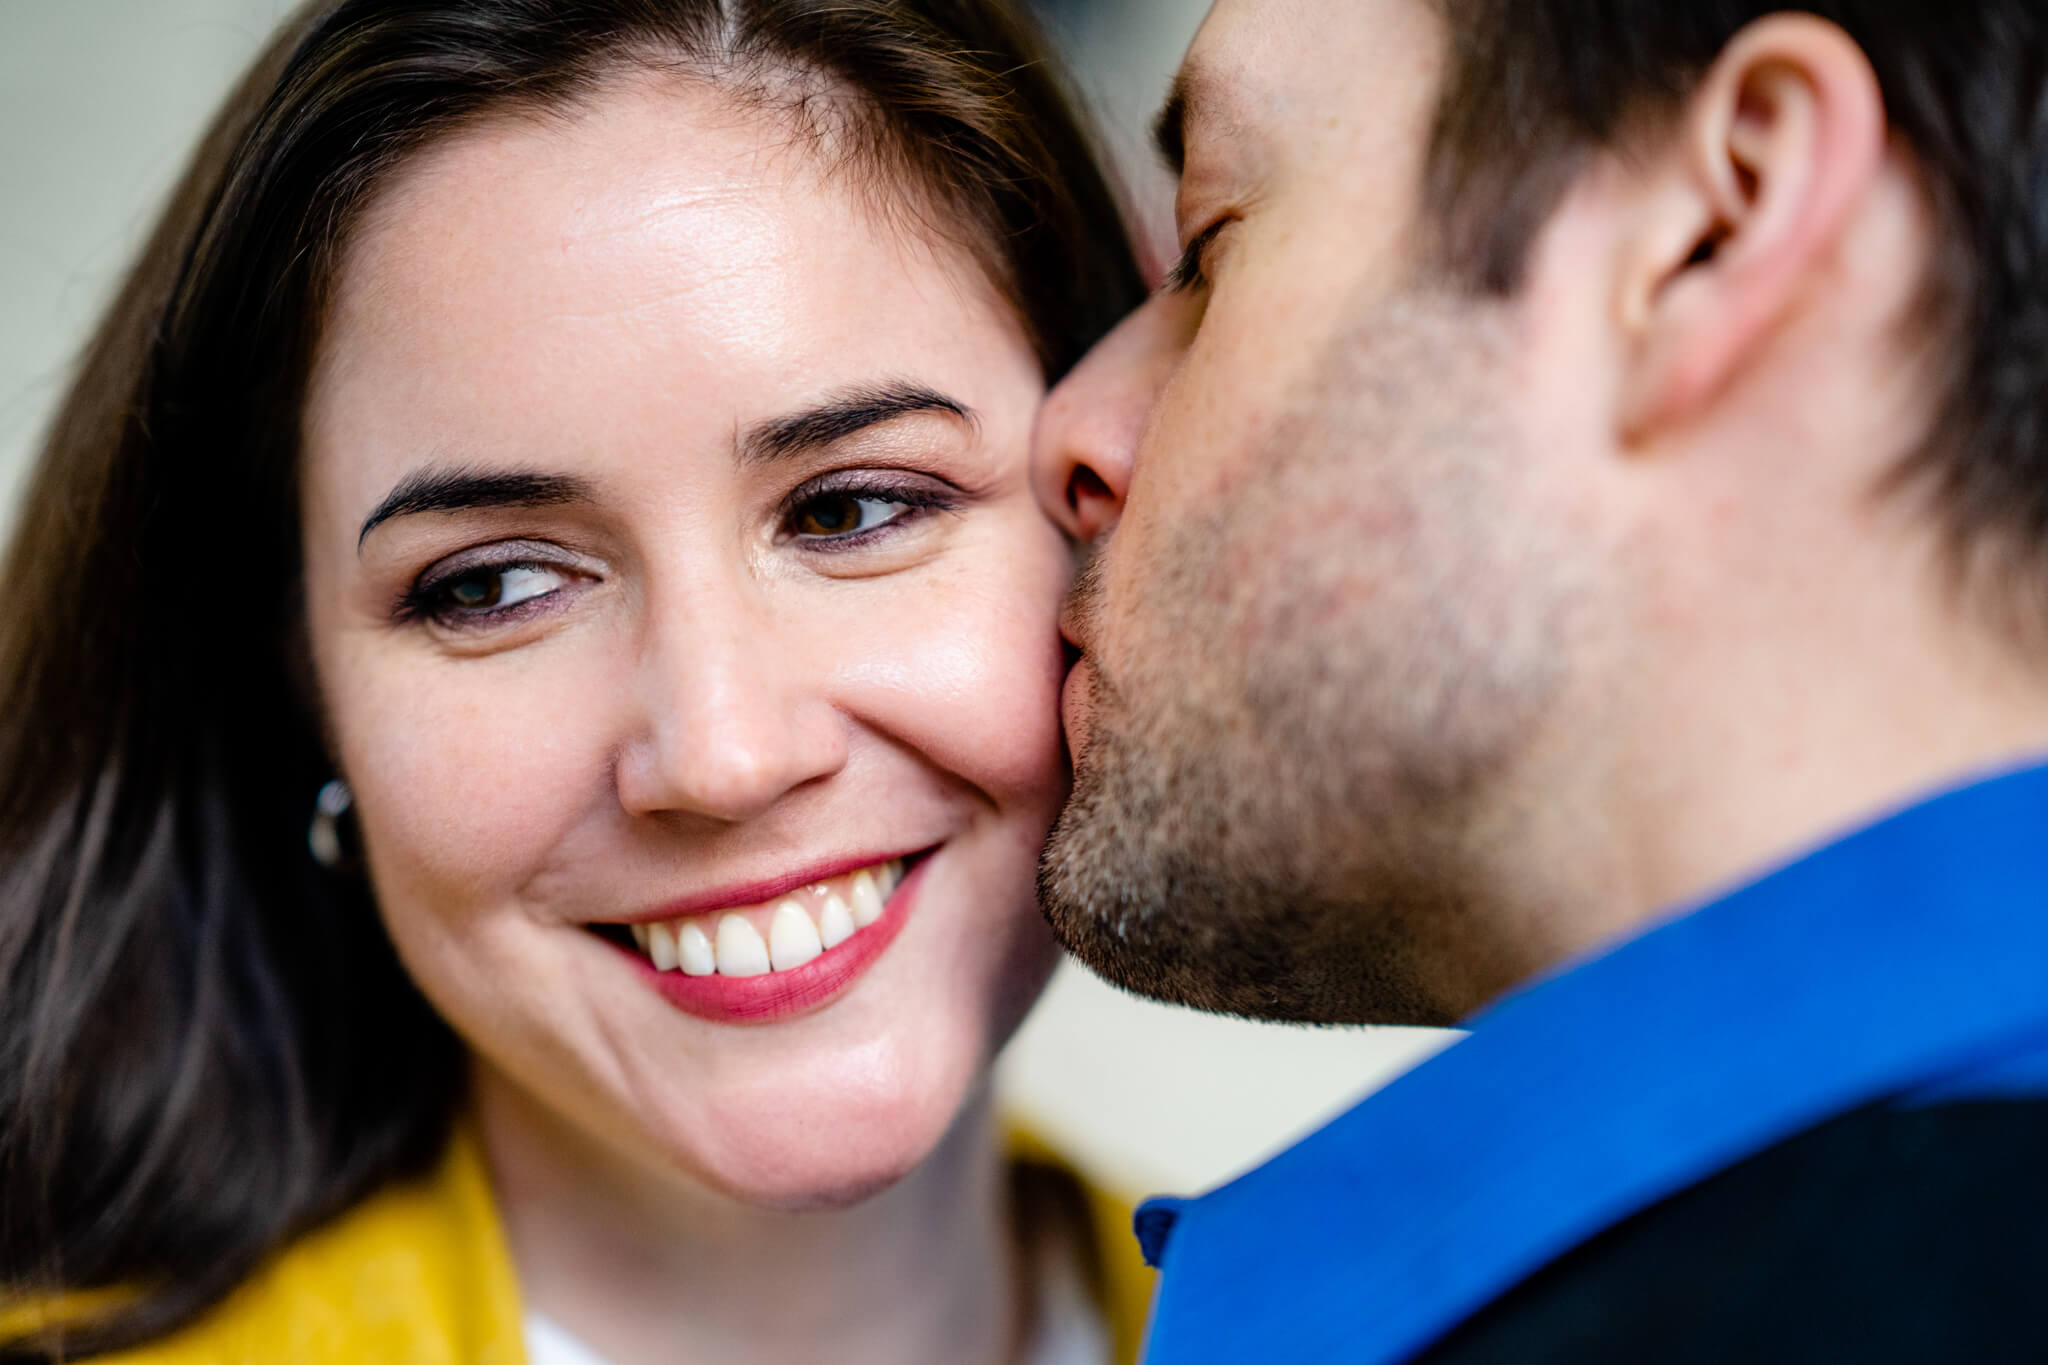 Ambar Engagement Session DC Engaged Balkan Restaurant DC Restaurant Engagement Session Winter Engagement Session-12.jpg